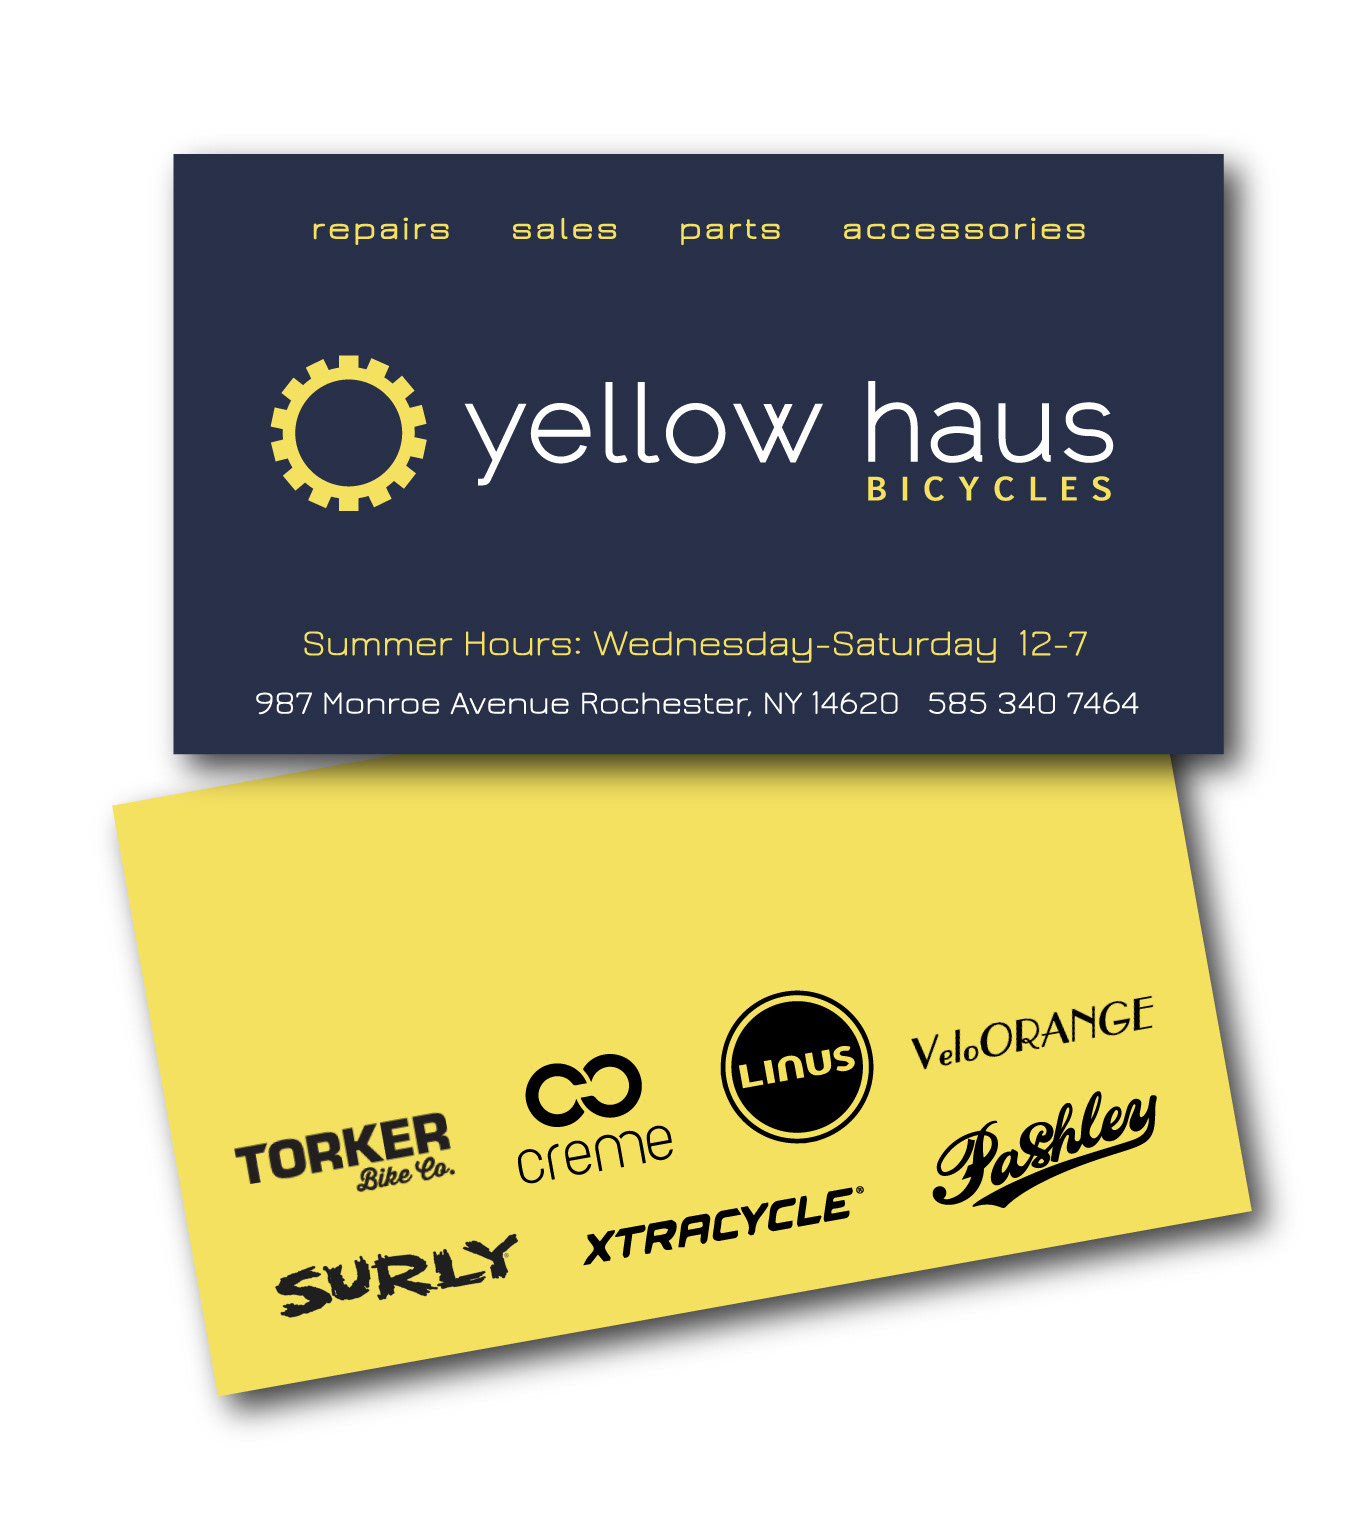 Heidi Wirth - Yellow Haus Bicycles [business card]